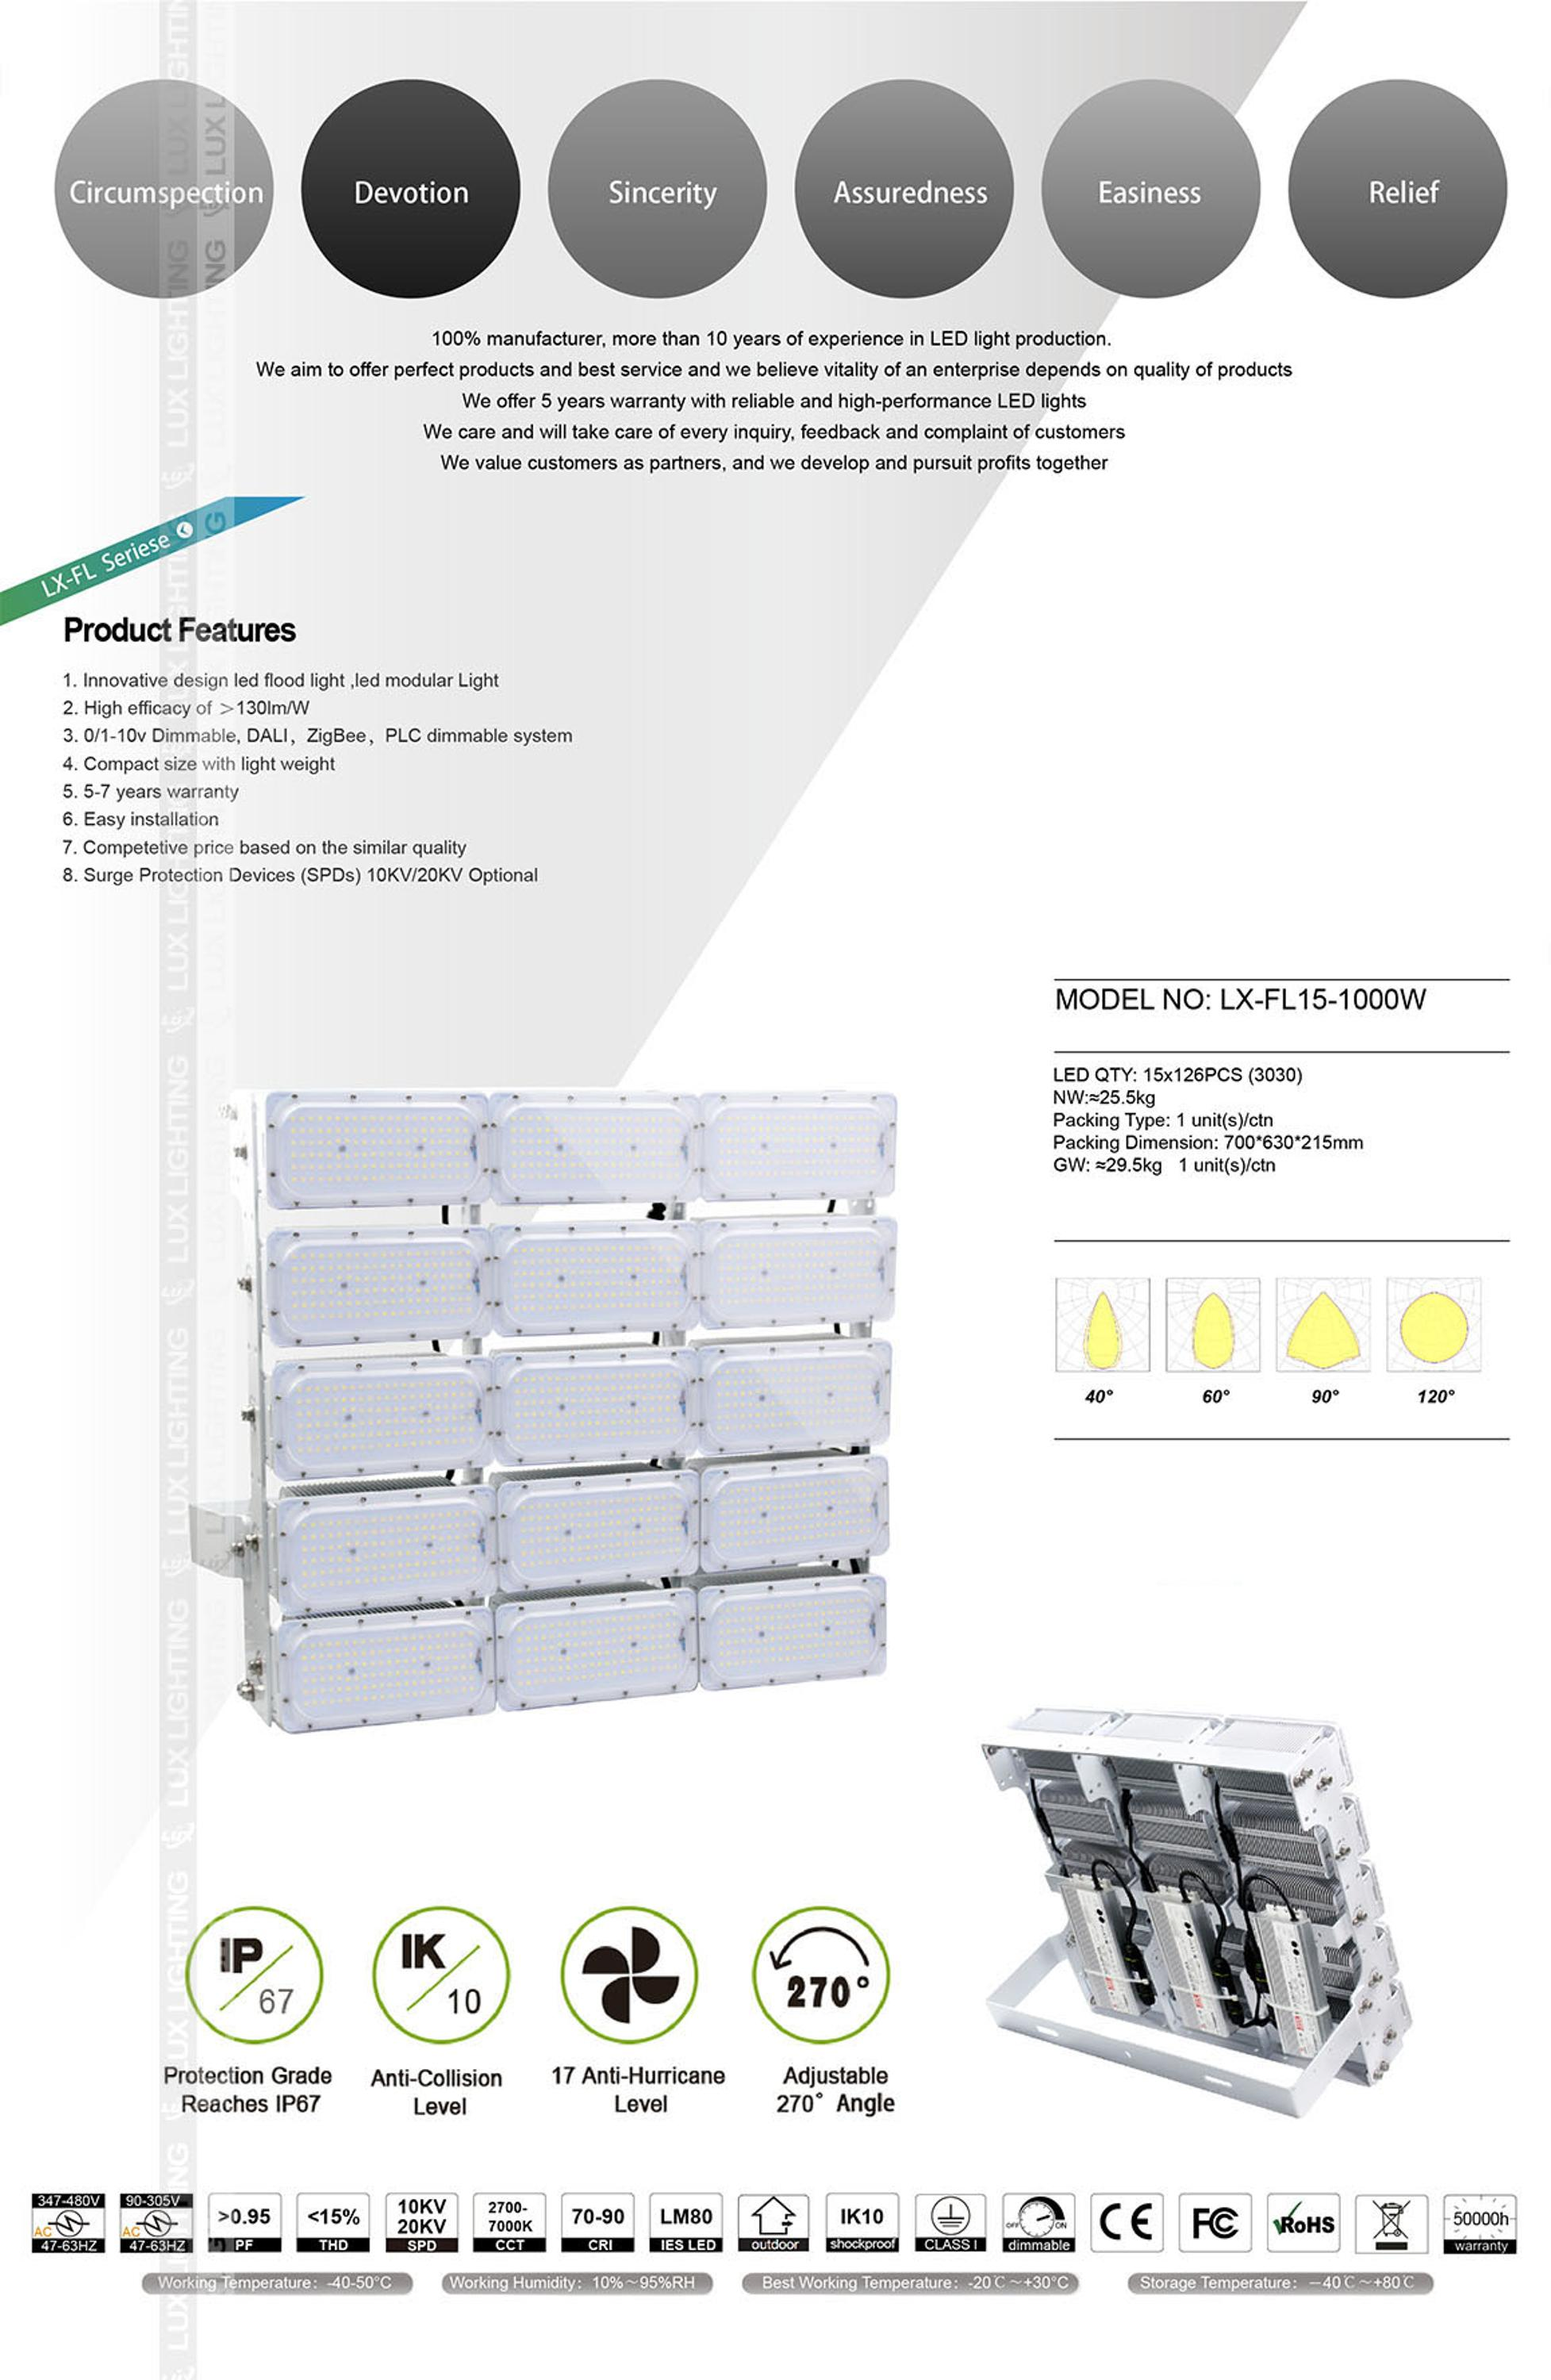 Narrow degree 120LM smd high lumen outdoor led 1000w spotlights